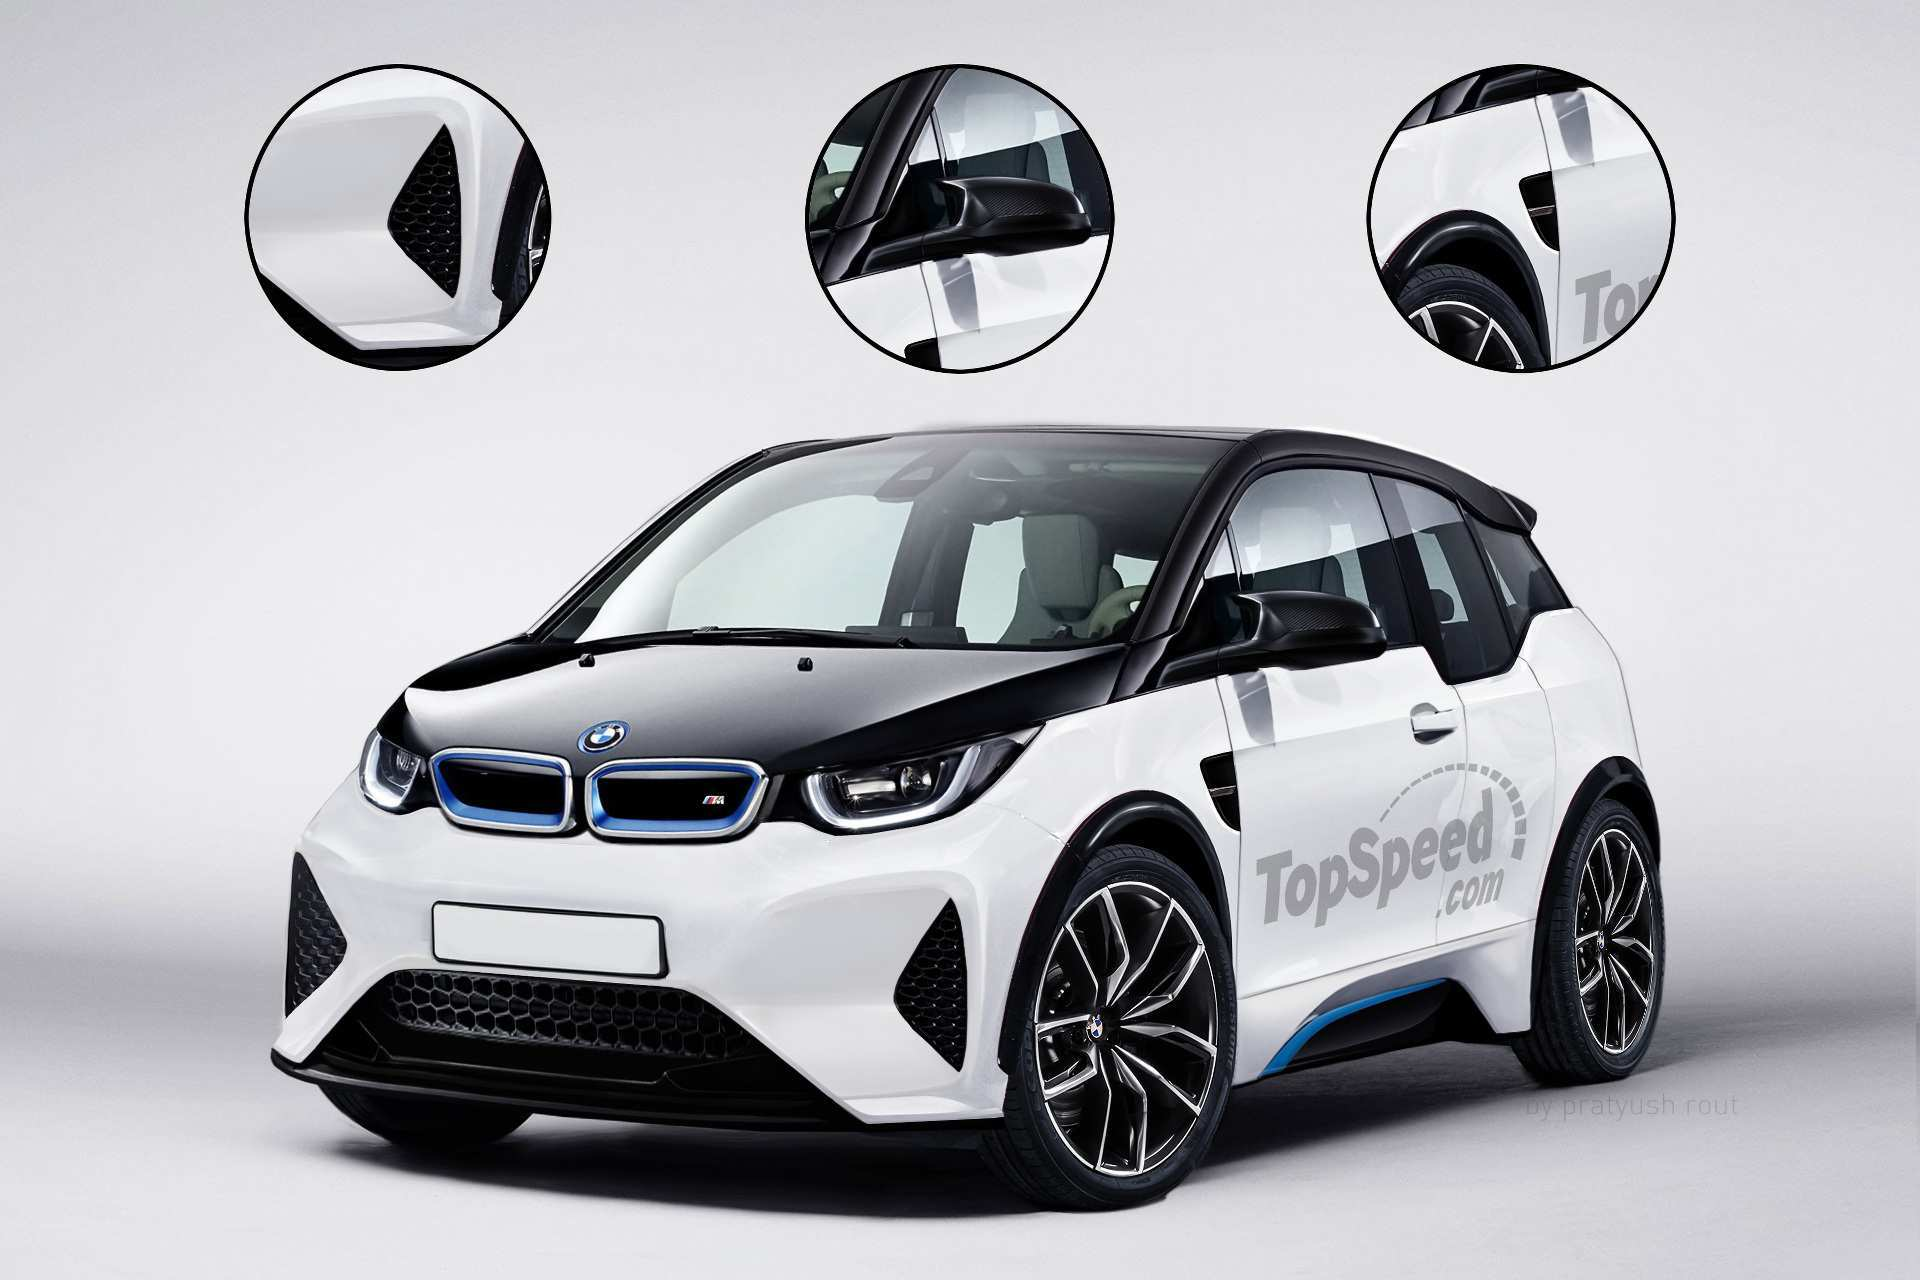 51 All New BMW I3 2020 Pricing